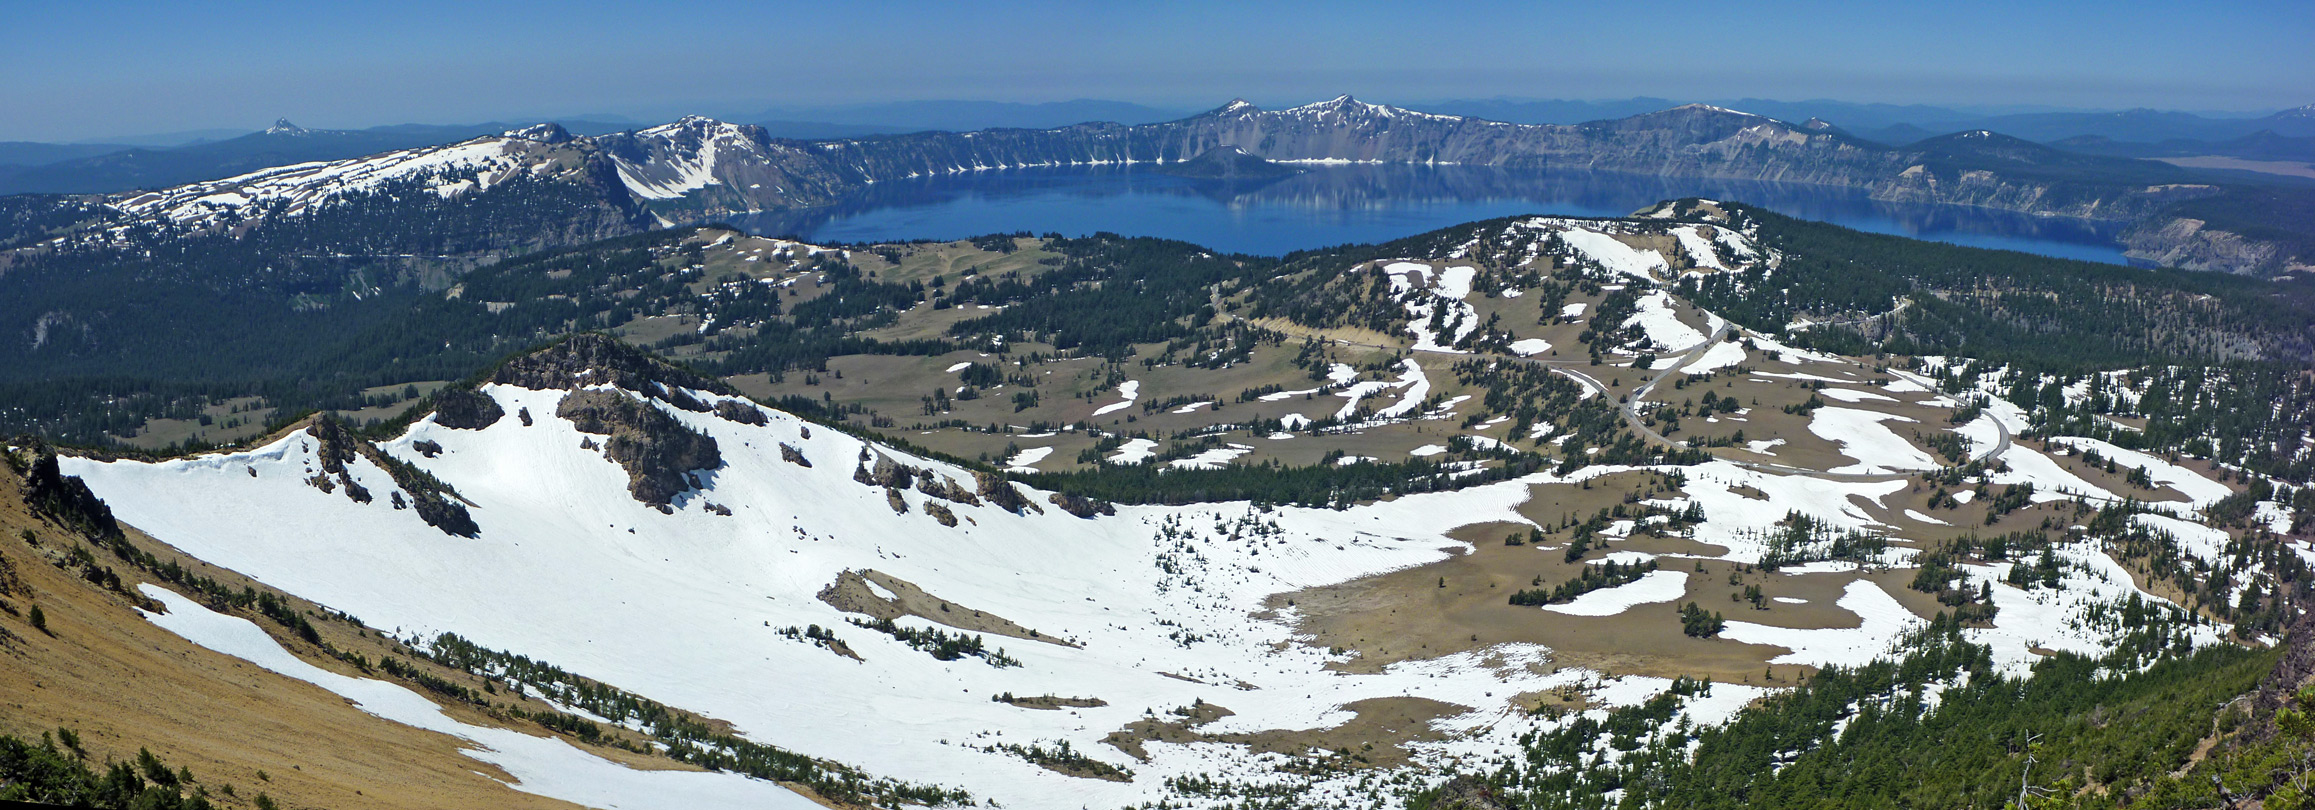 The summit - view west, towards Crater Lake